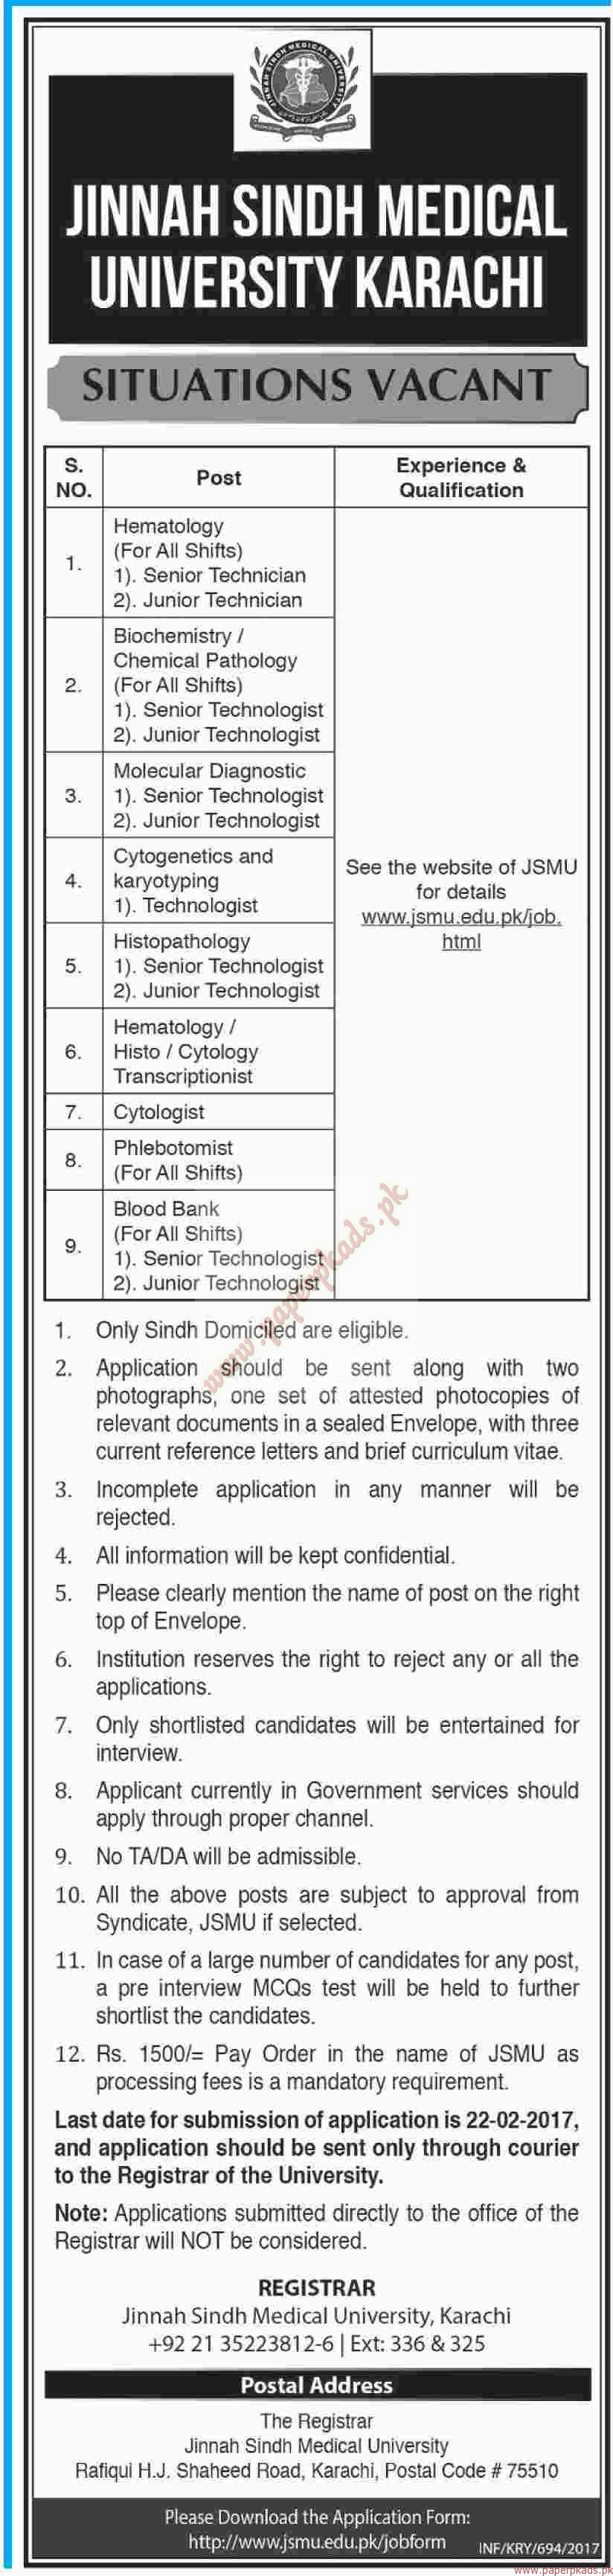 jinnah sindh medical university karachi jobs 2 dawn jobs ads 12 related articles